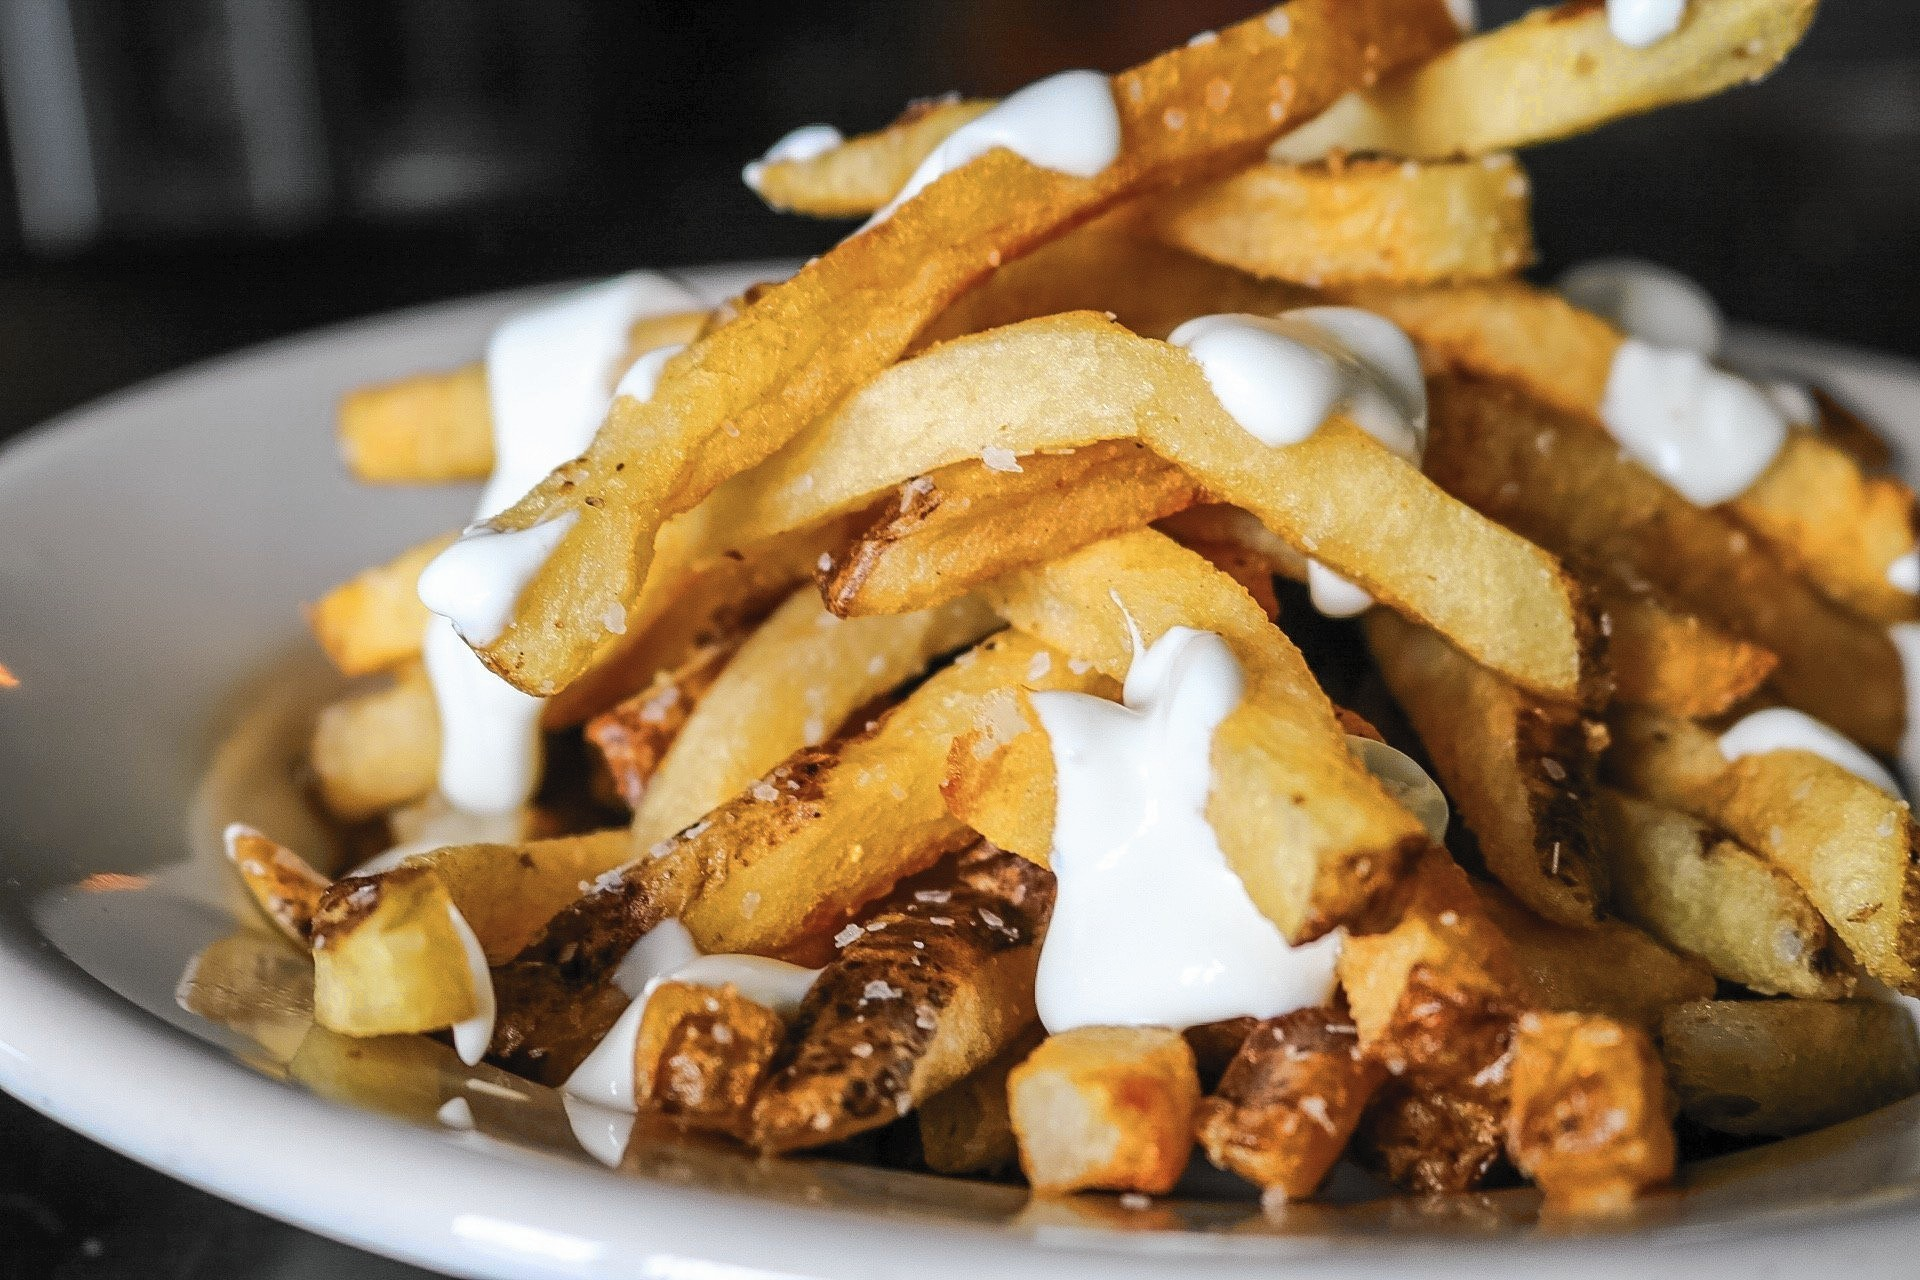 Eat This: Some of Chicago's best French fries, found in Lakeview